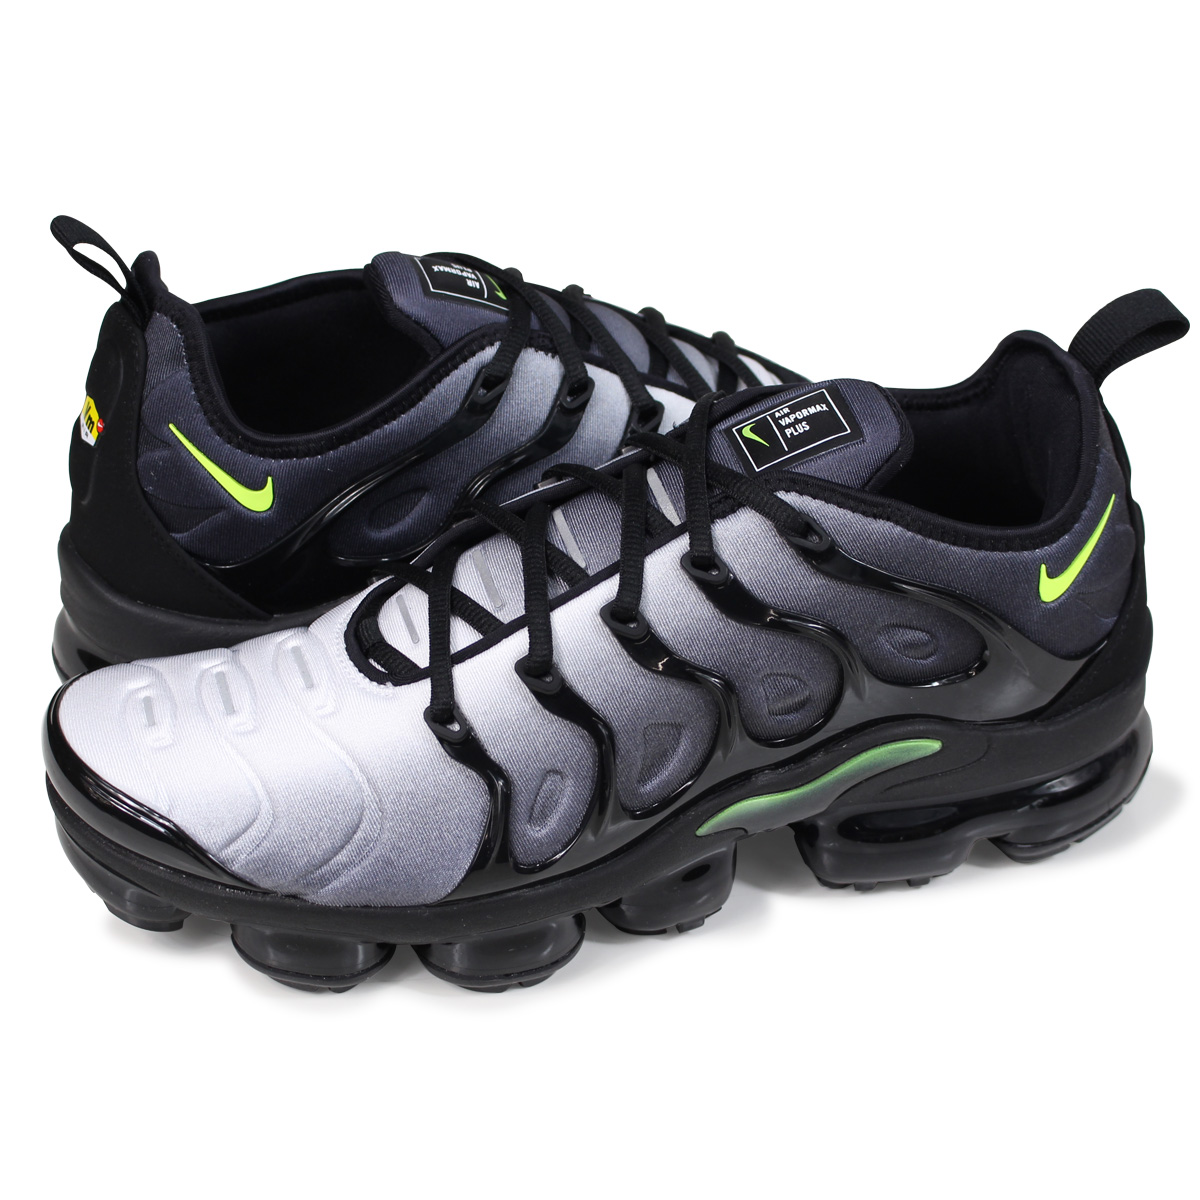 best sneakers eed9b 89157 NIKE AIR VAPORMAX PLUS Nike vapor max plus sneakers men 924,453-009 black  [4/17 Shinnyu load]